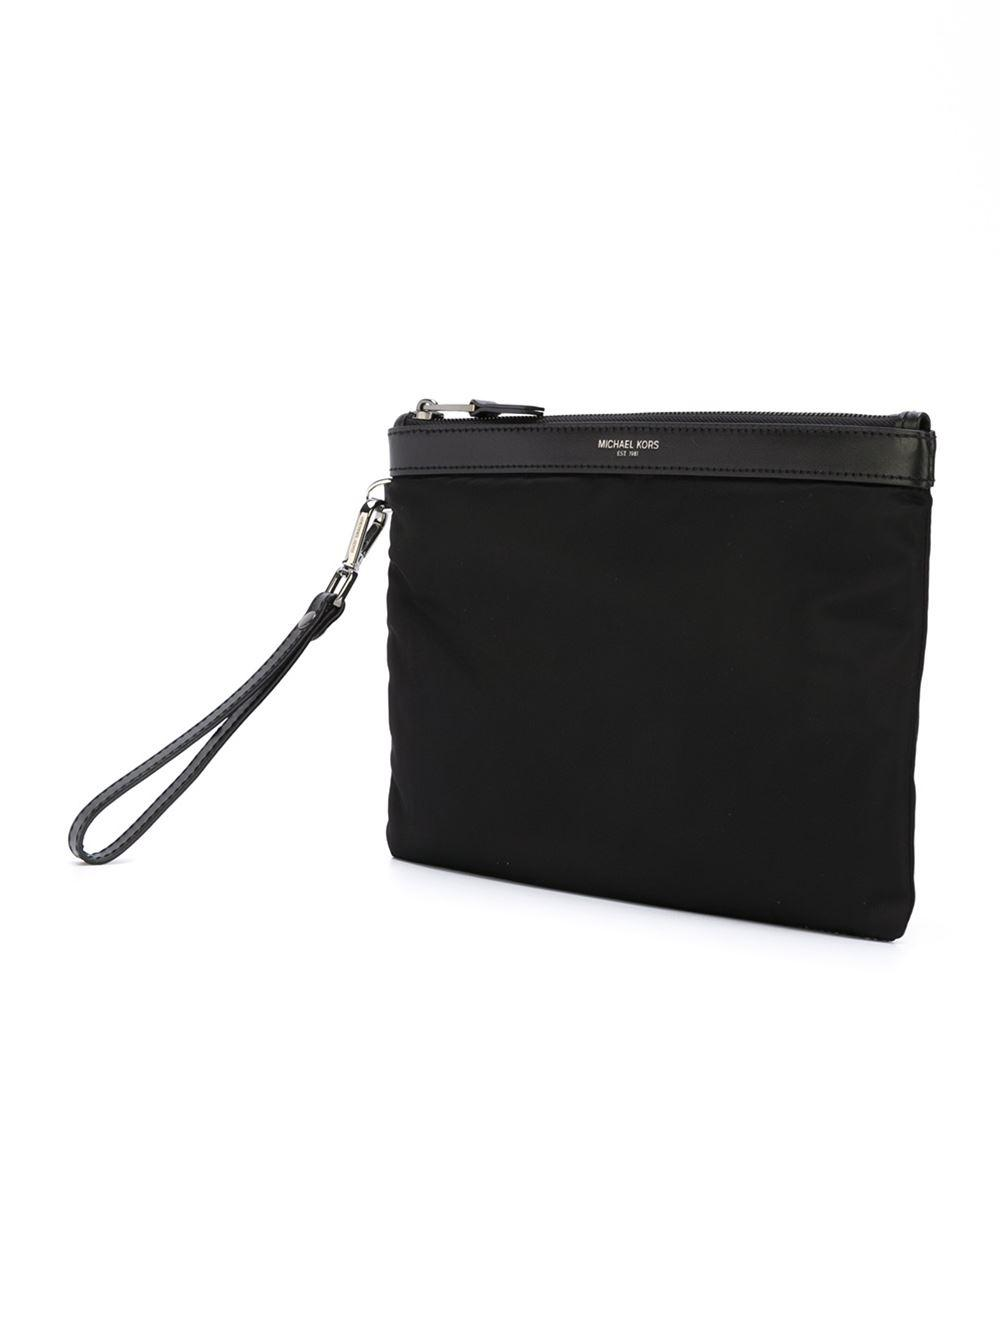 fbdde5134fa5 Michael Kors - Black Wrist Strap Clutch for Men - Lyst. View fullscreen